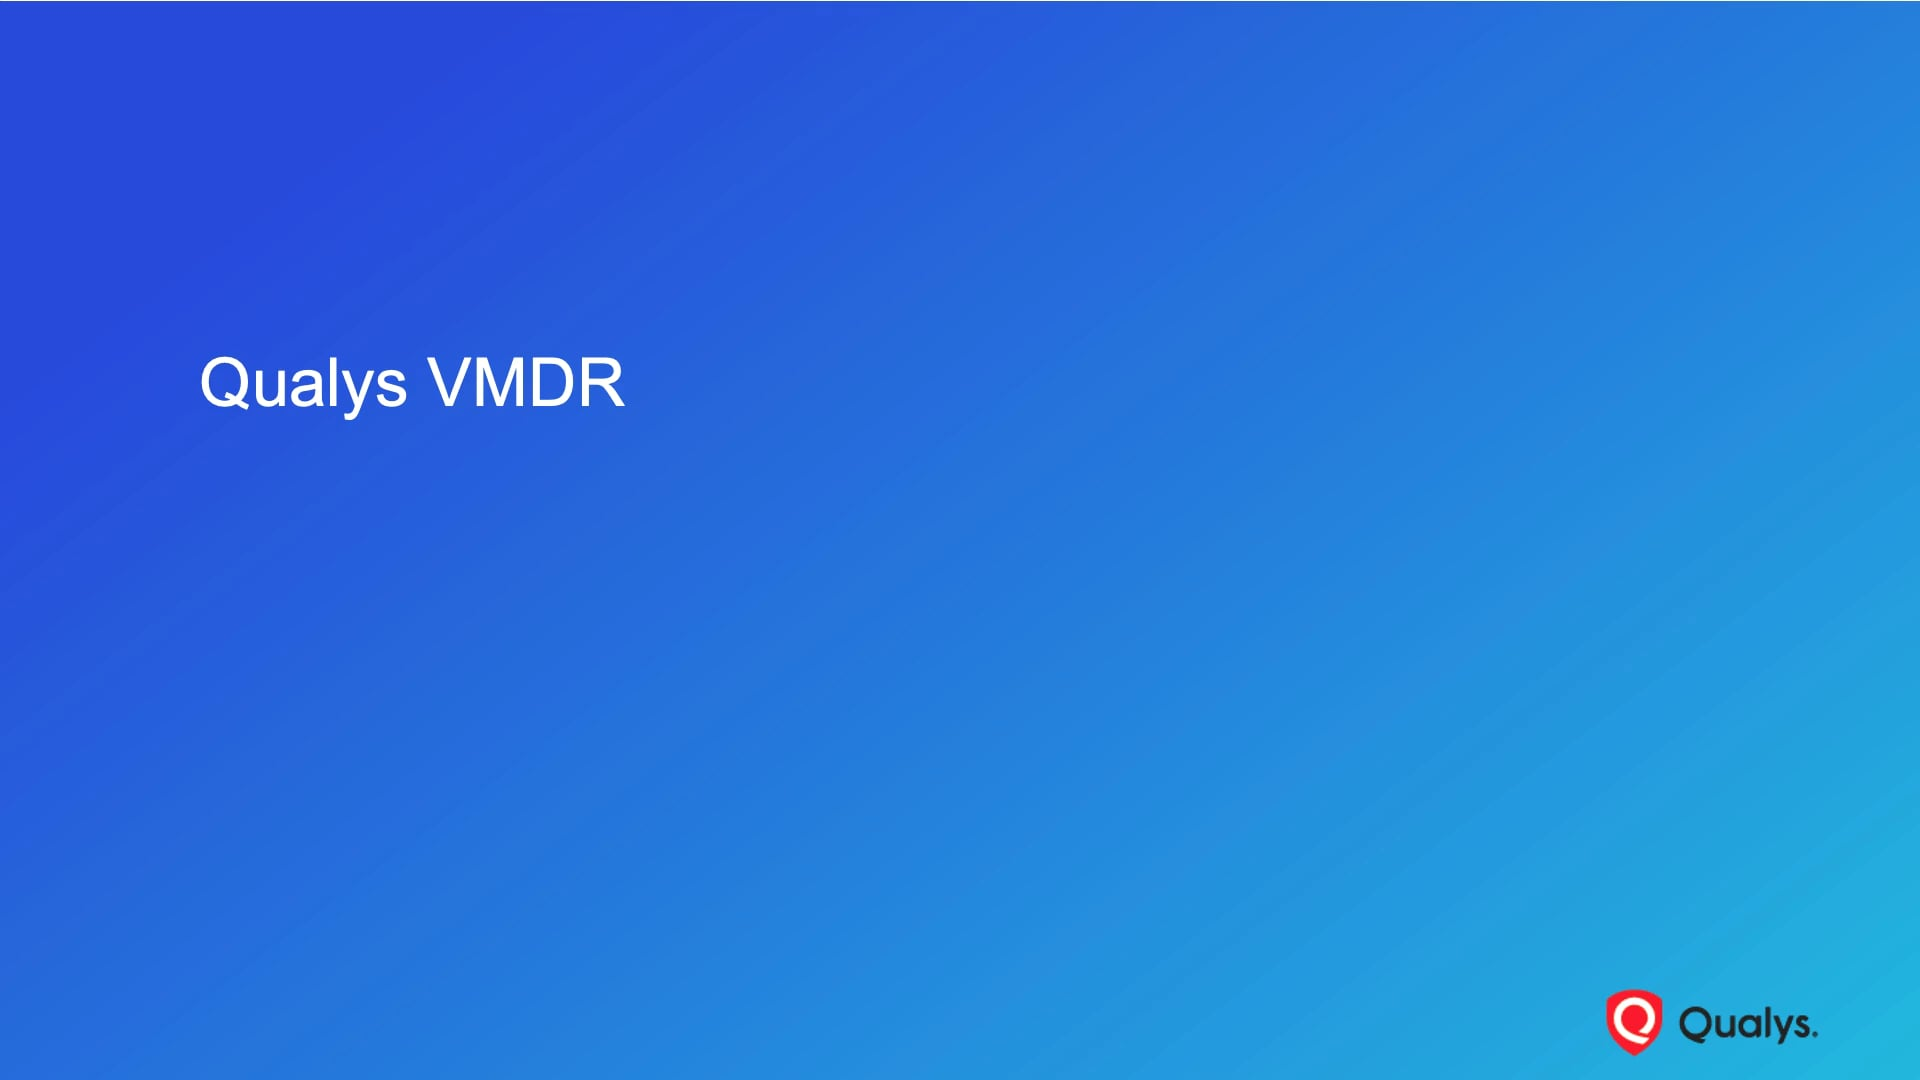 Introduction to Qualys VMDR